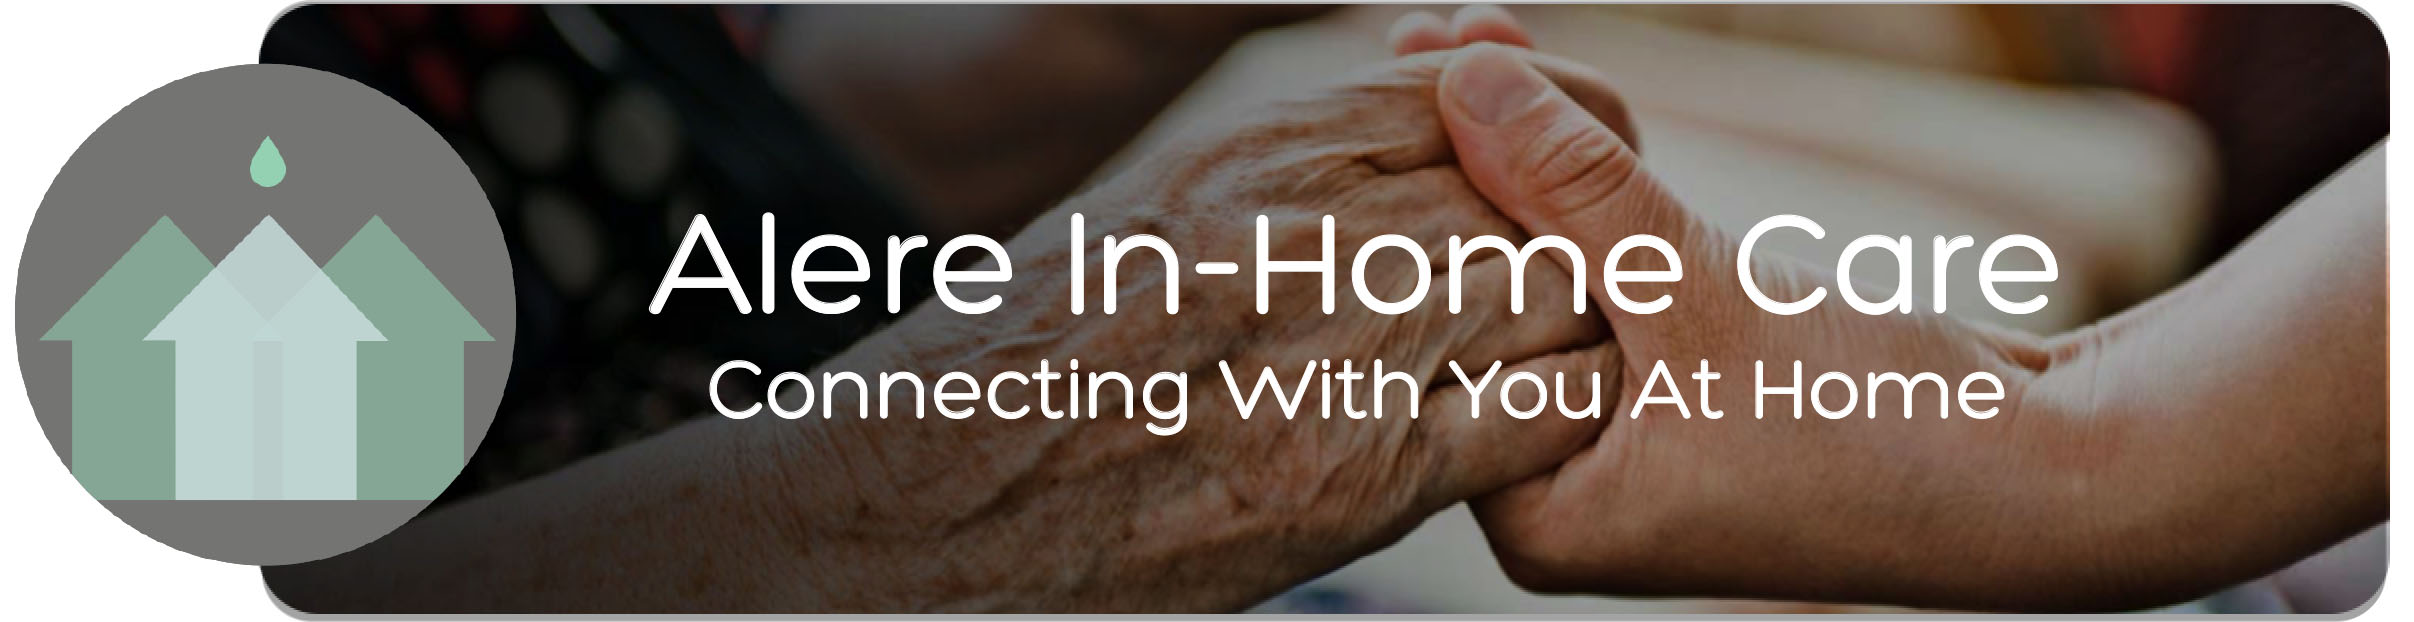 Alere In-Home Care   Senior Care   Hourly & 24 Hour Live-In Care